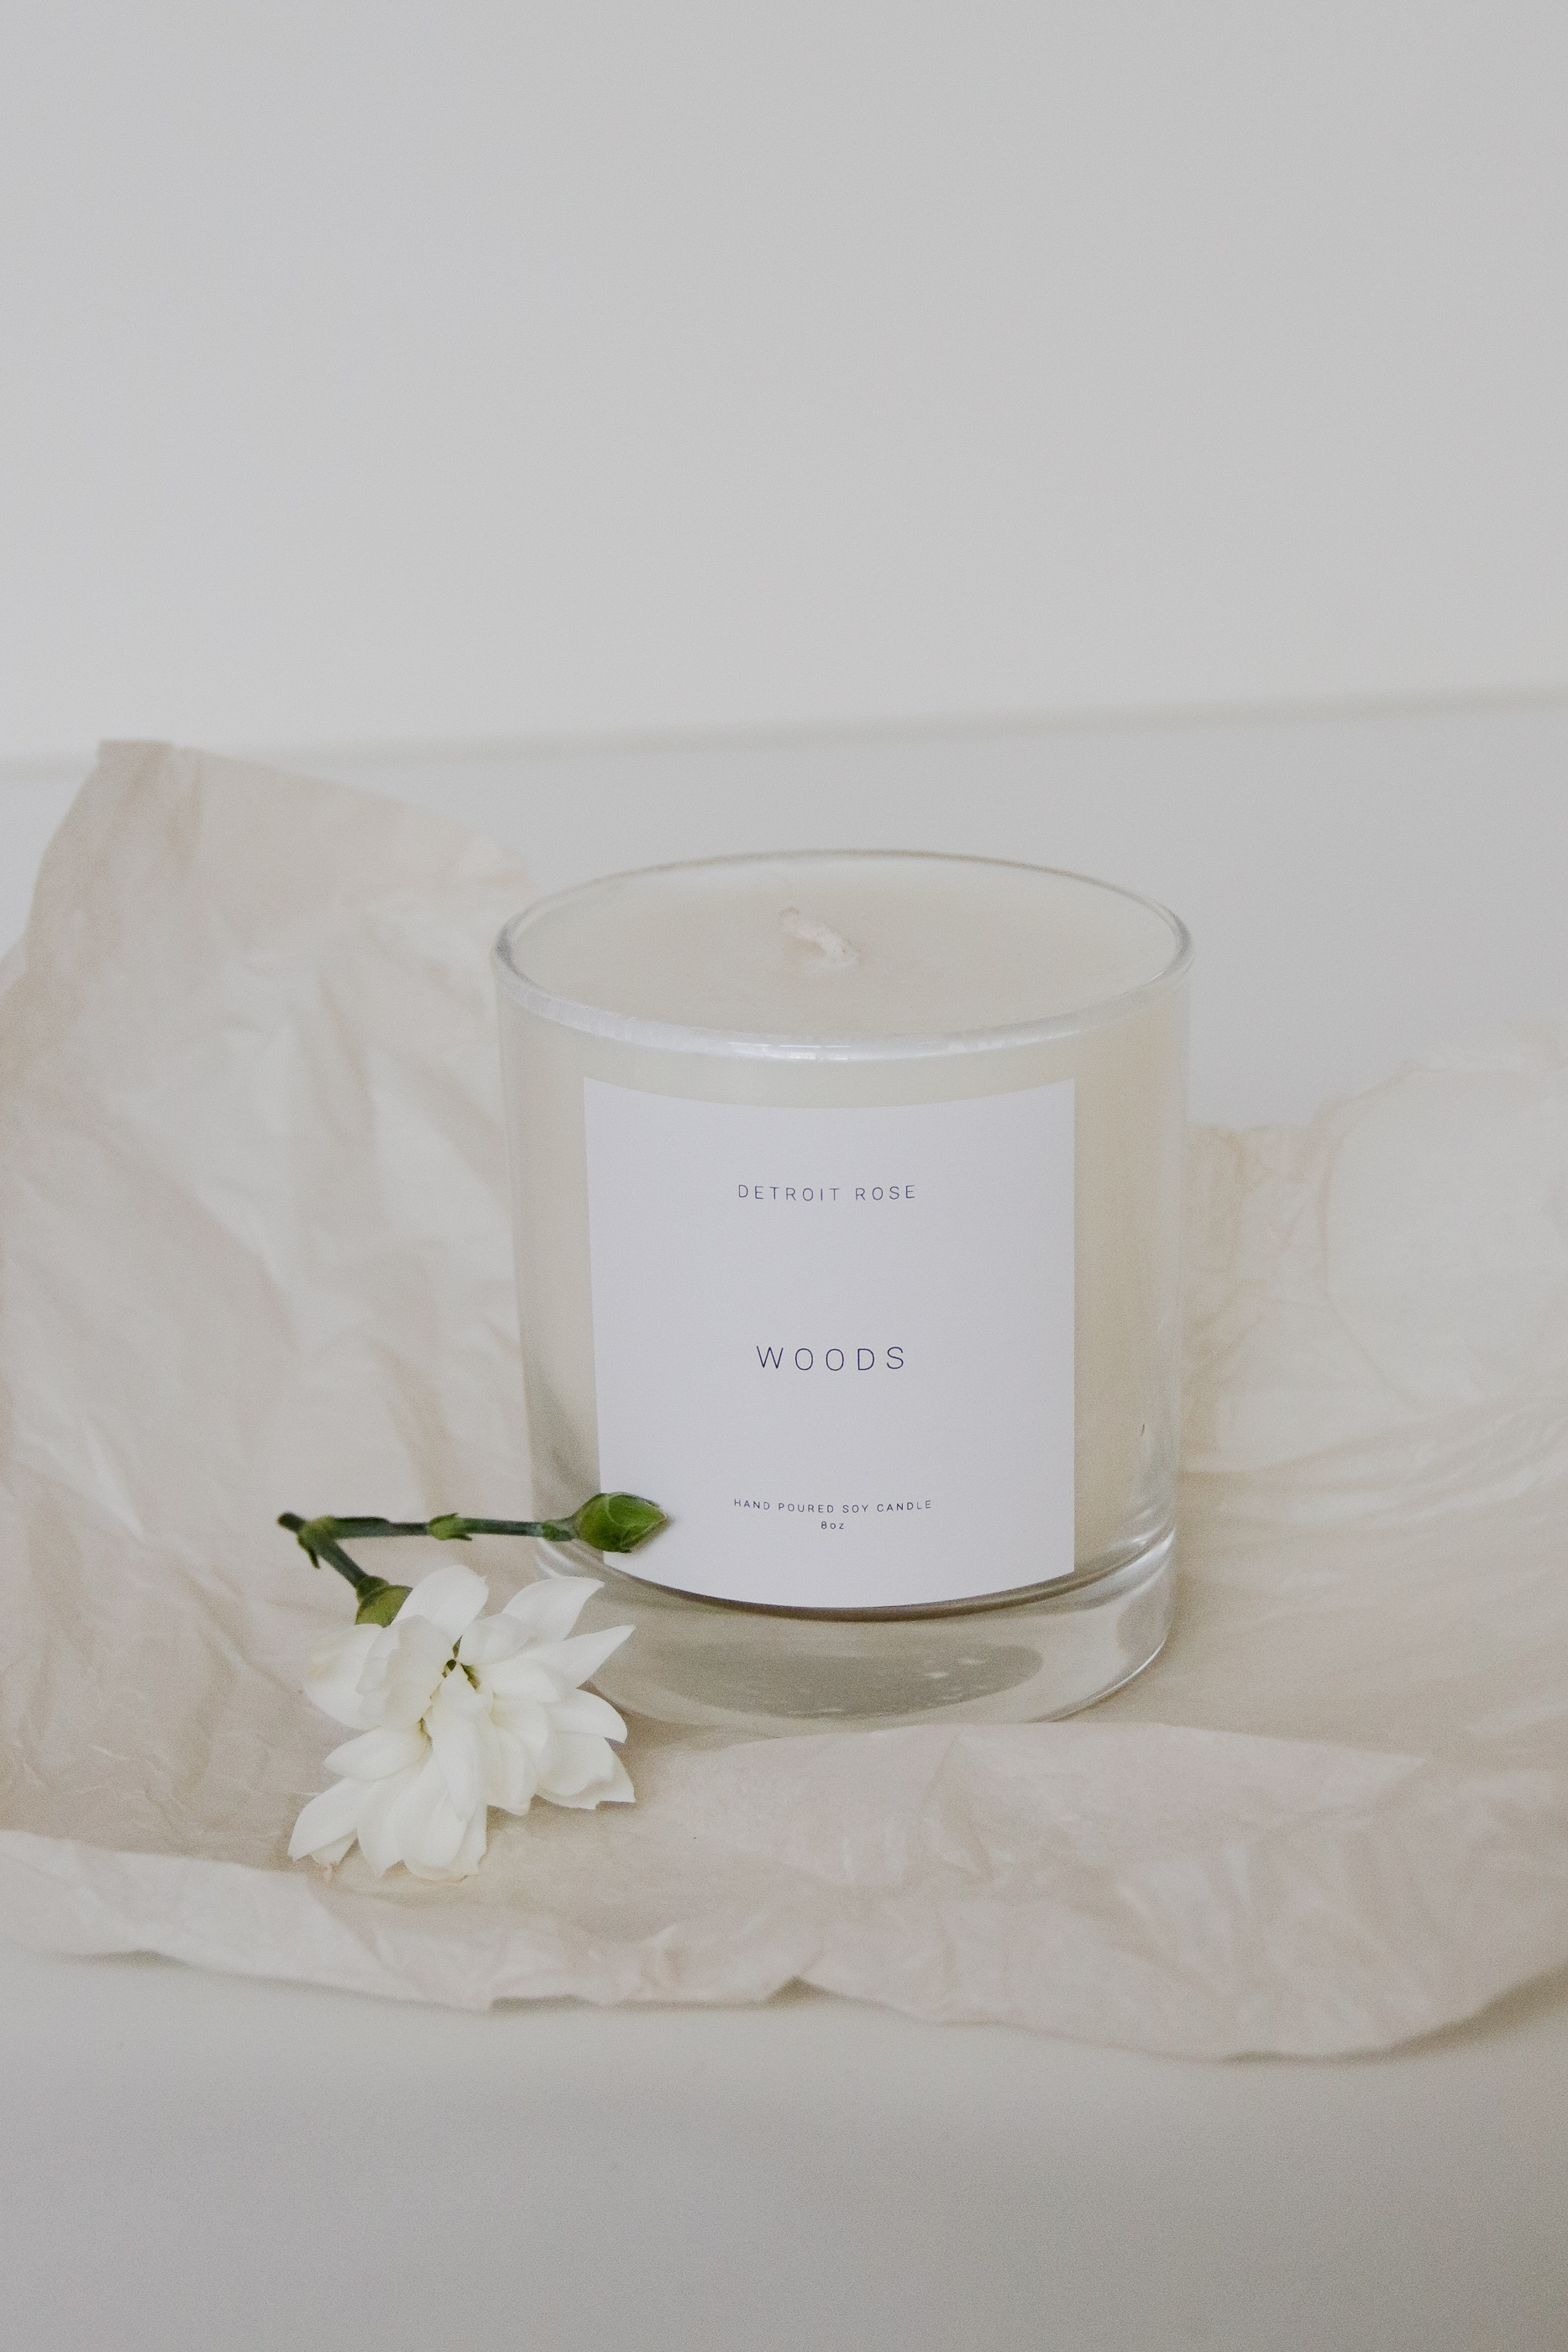 Detroit Rose Woods Soy Candle